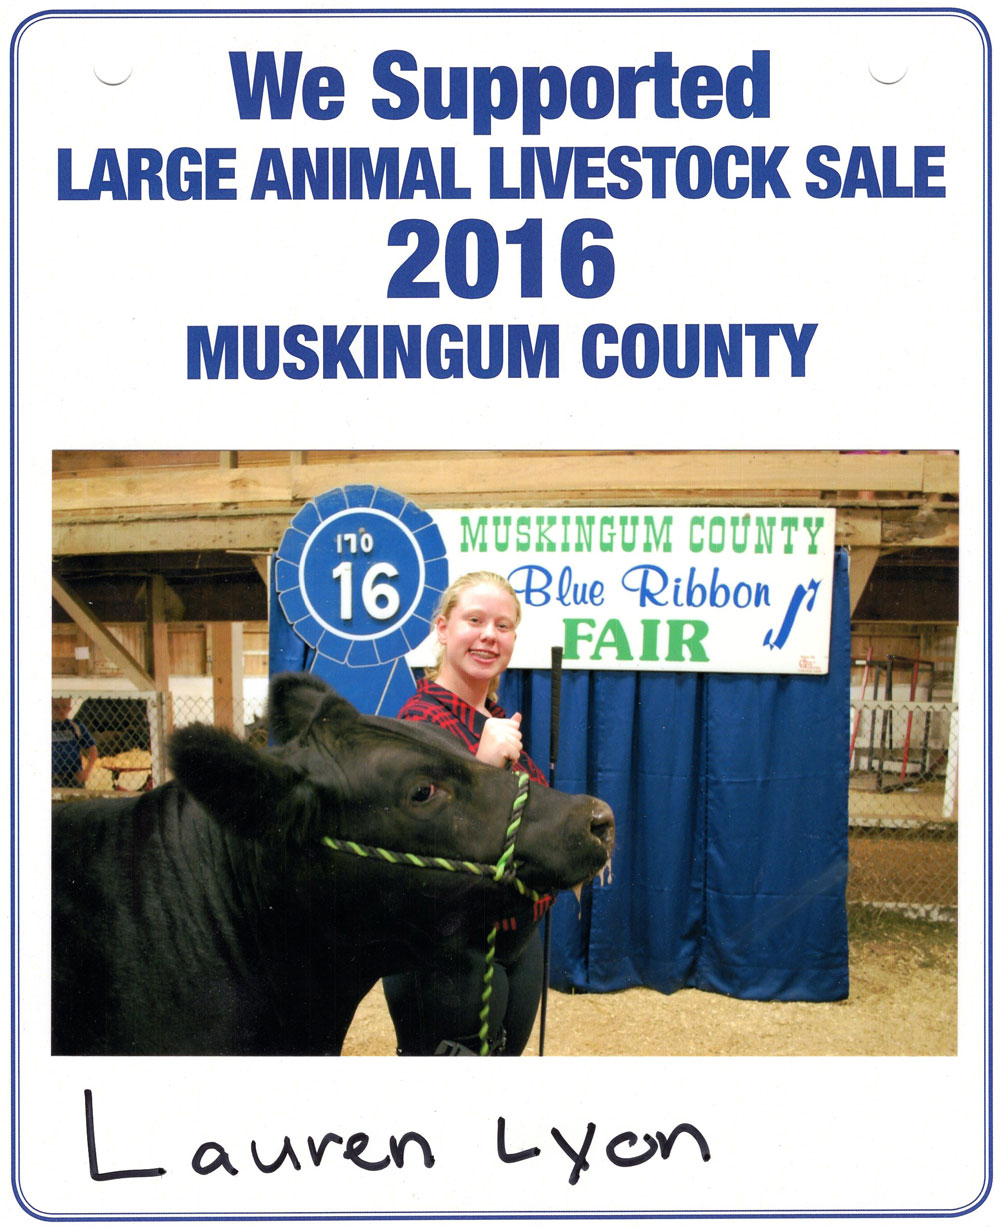 Zemba Bros Community Support Muskingum County Fair Live Stock Auction 4